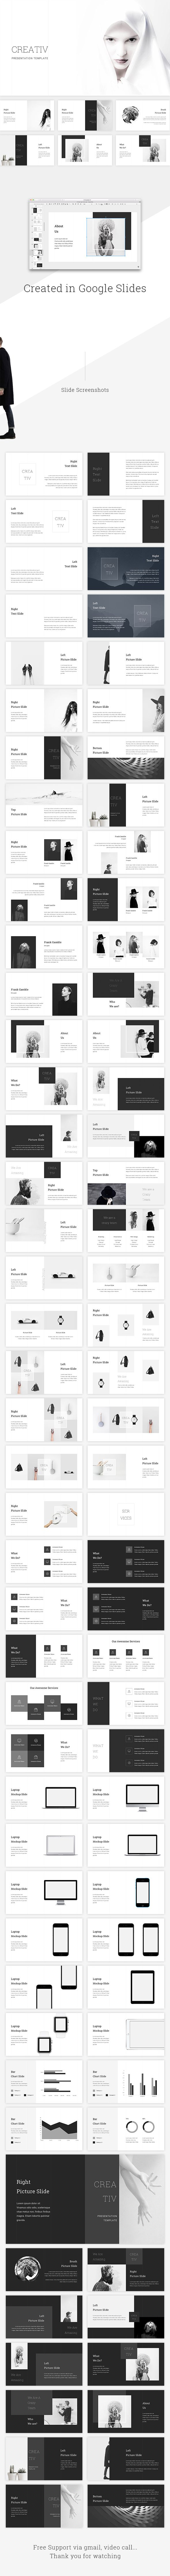 Creative Google Slides Template - Google Slides Presentation Templates